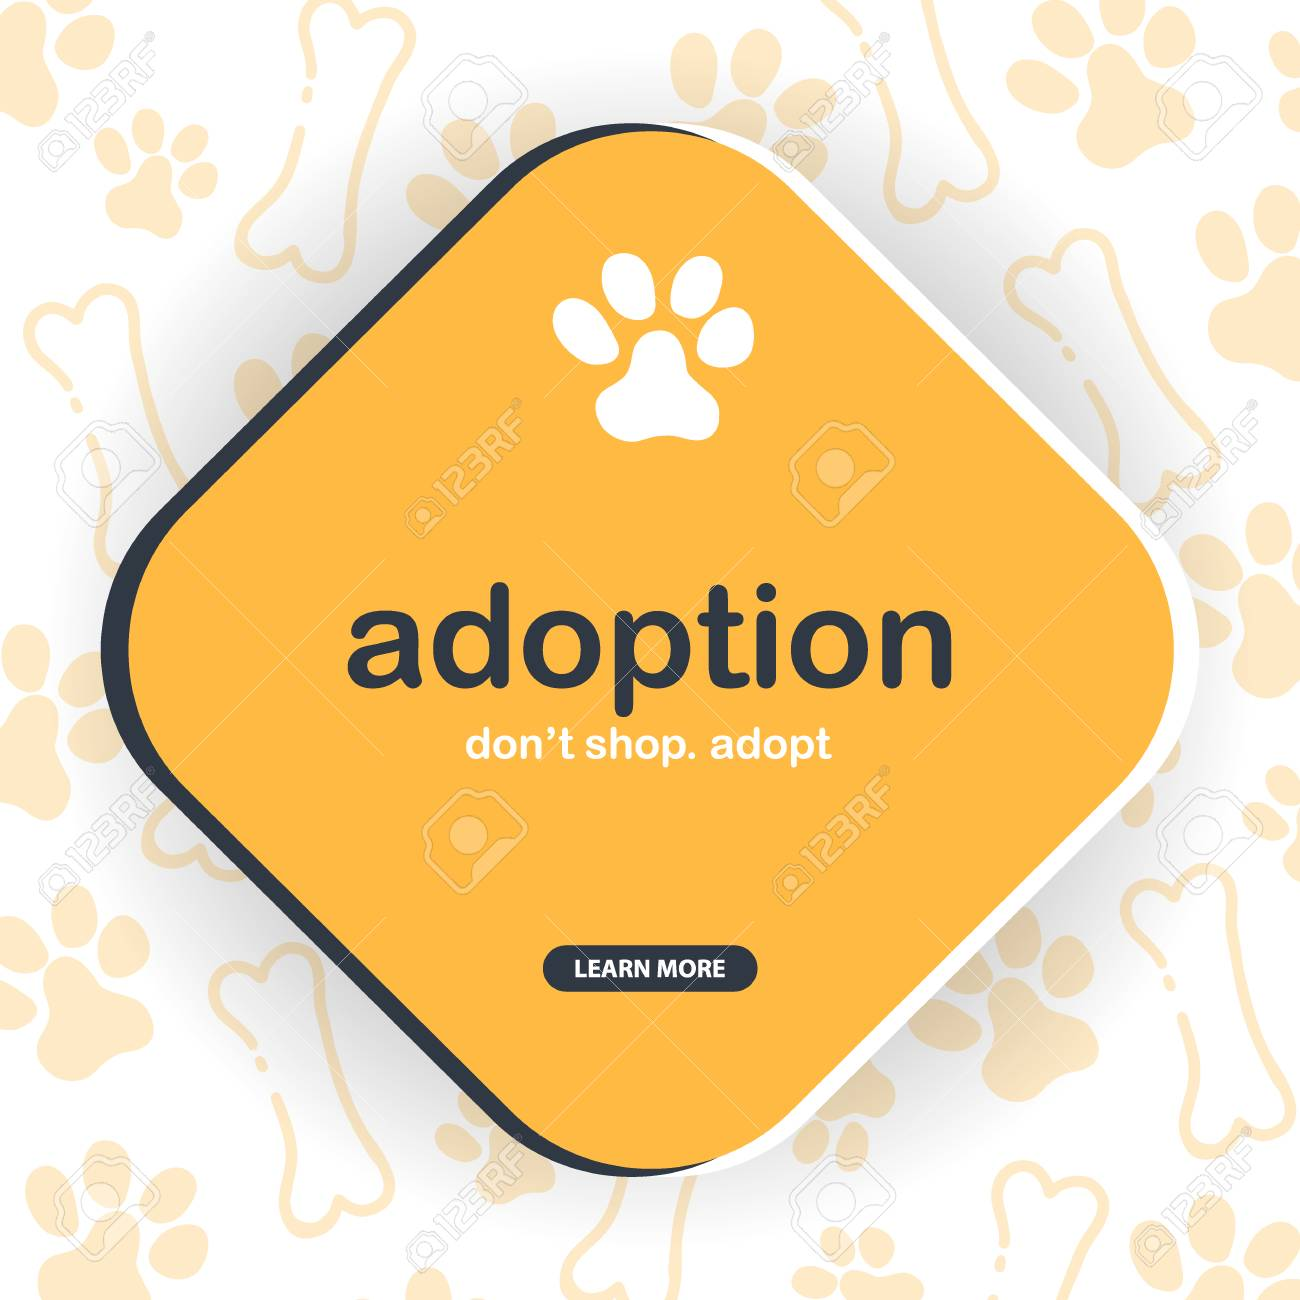 Adoption Dont Shop Adopt Banner With Cat Or Dog Paws Hand